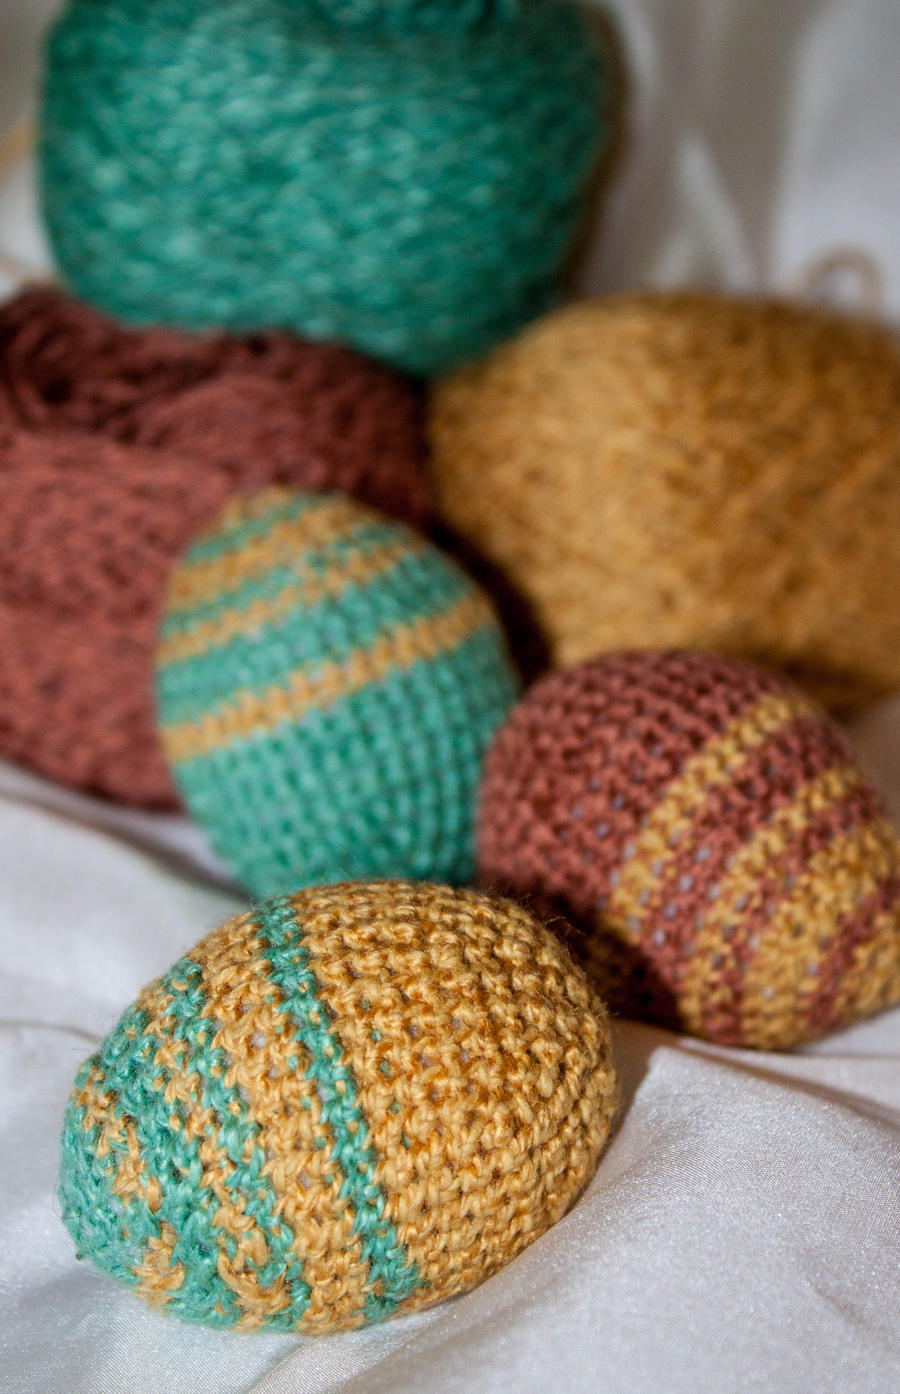 Amigurumi Crochet Egg : Amigurumi Crochet Easter Eggs by esther-rose-mouse on ...